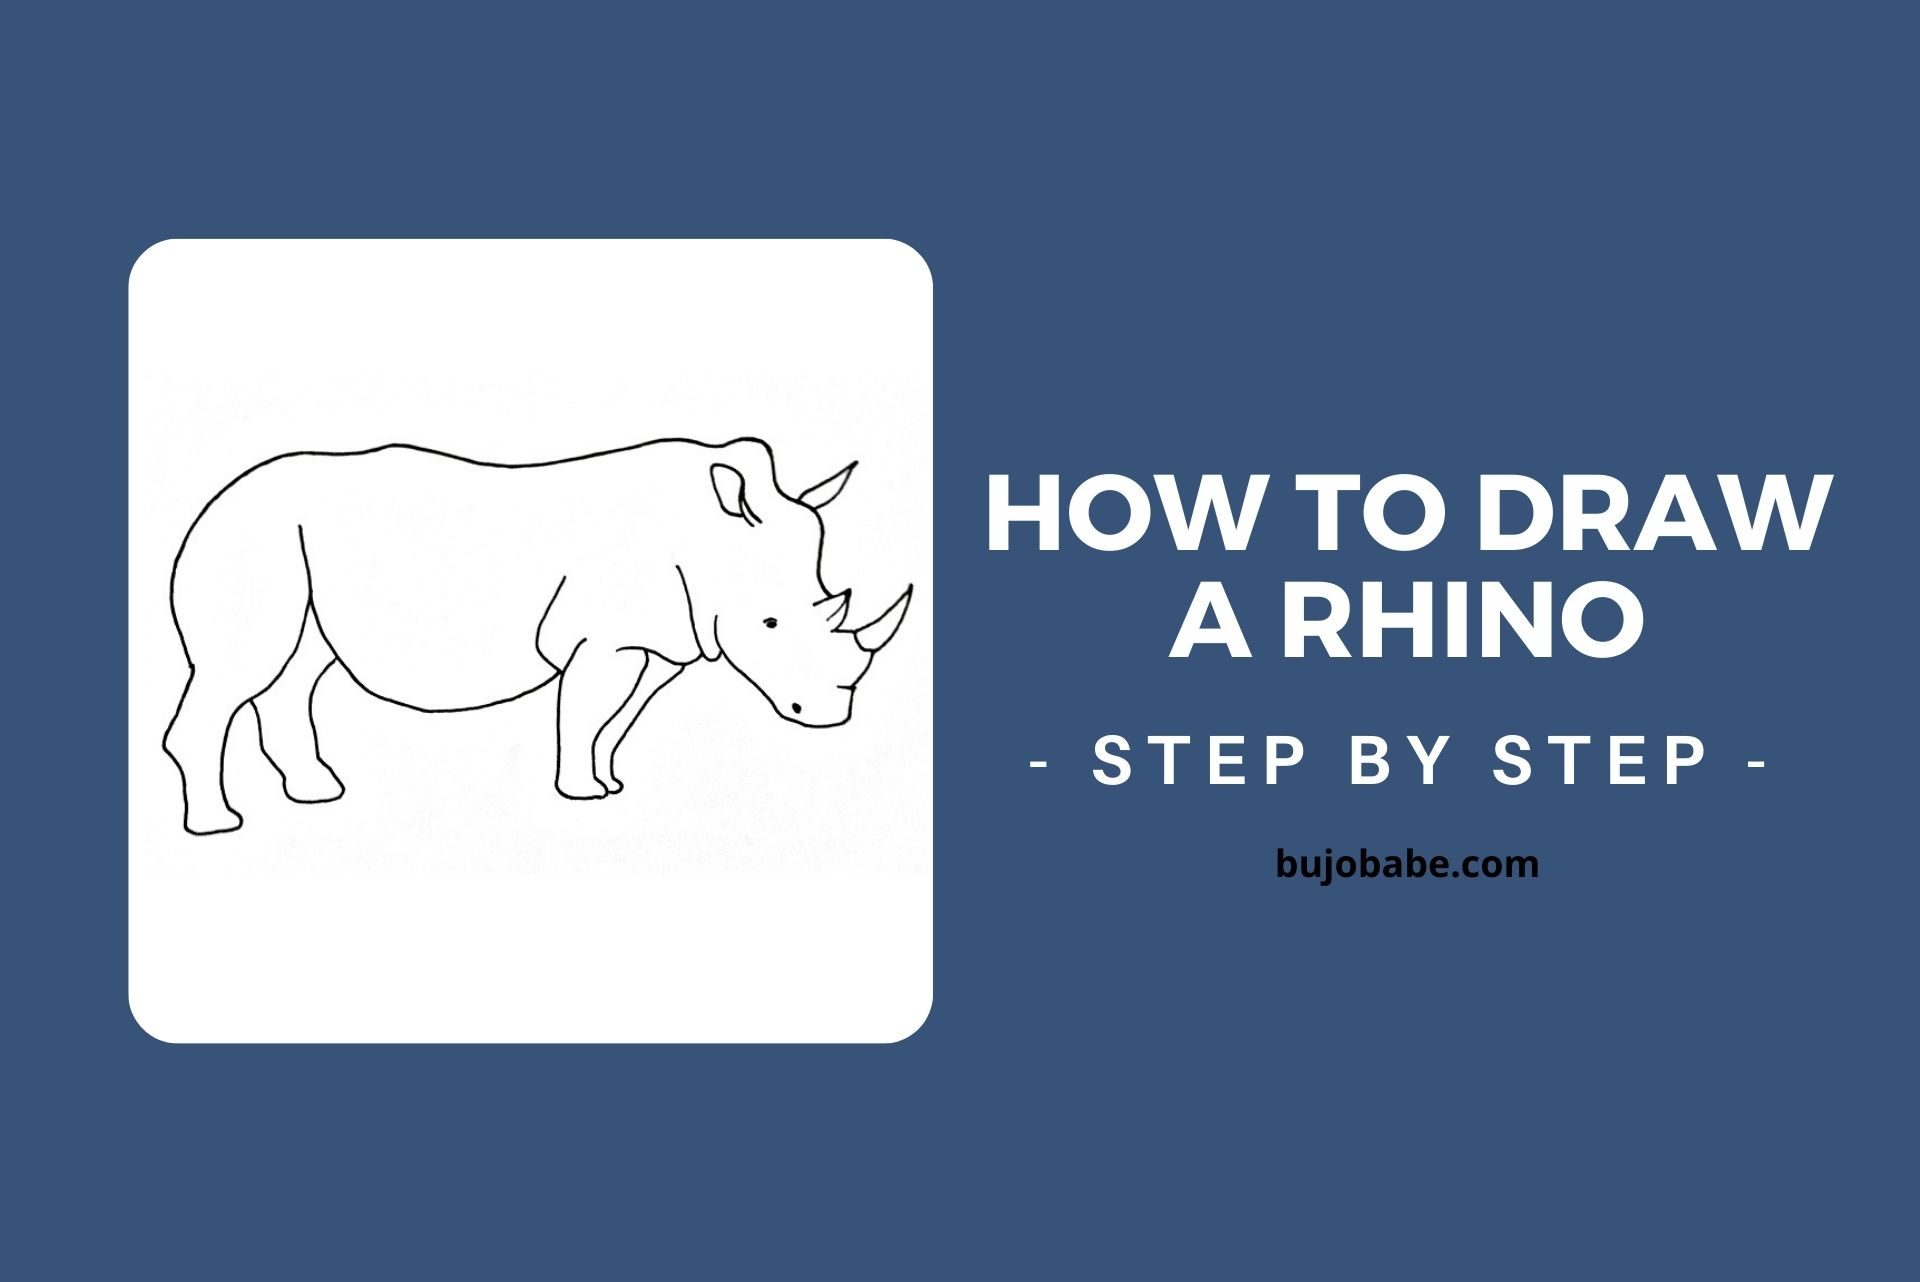 how to draw a rhino step by step